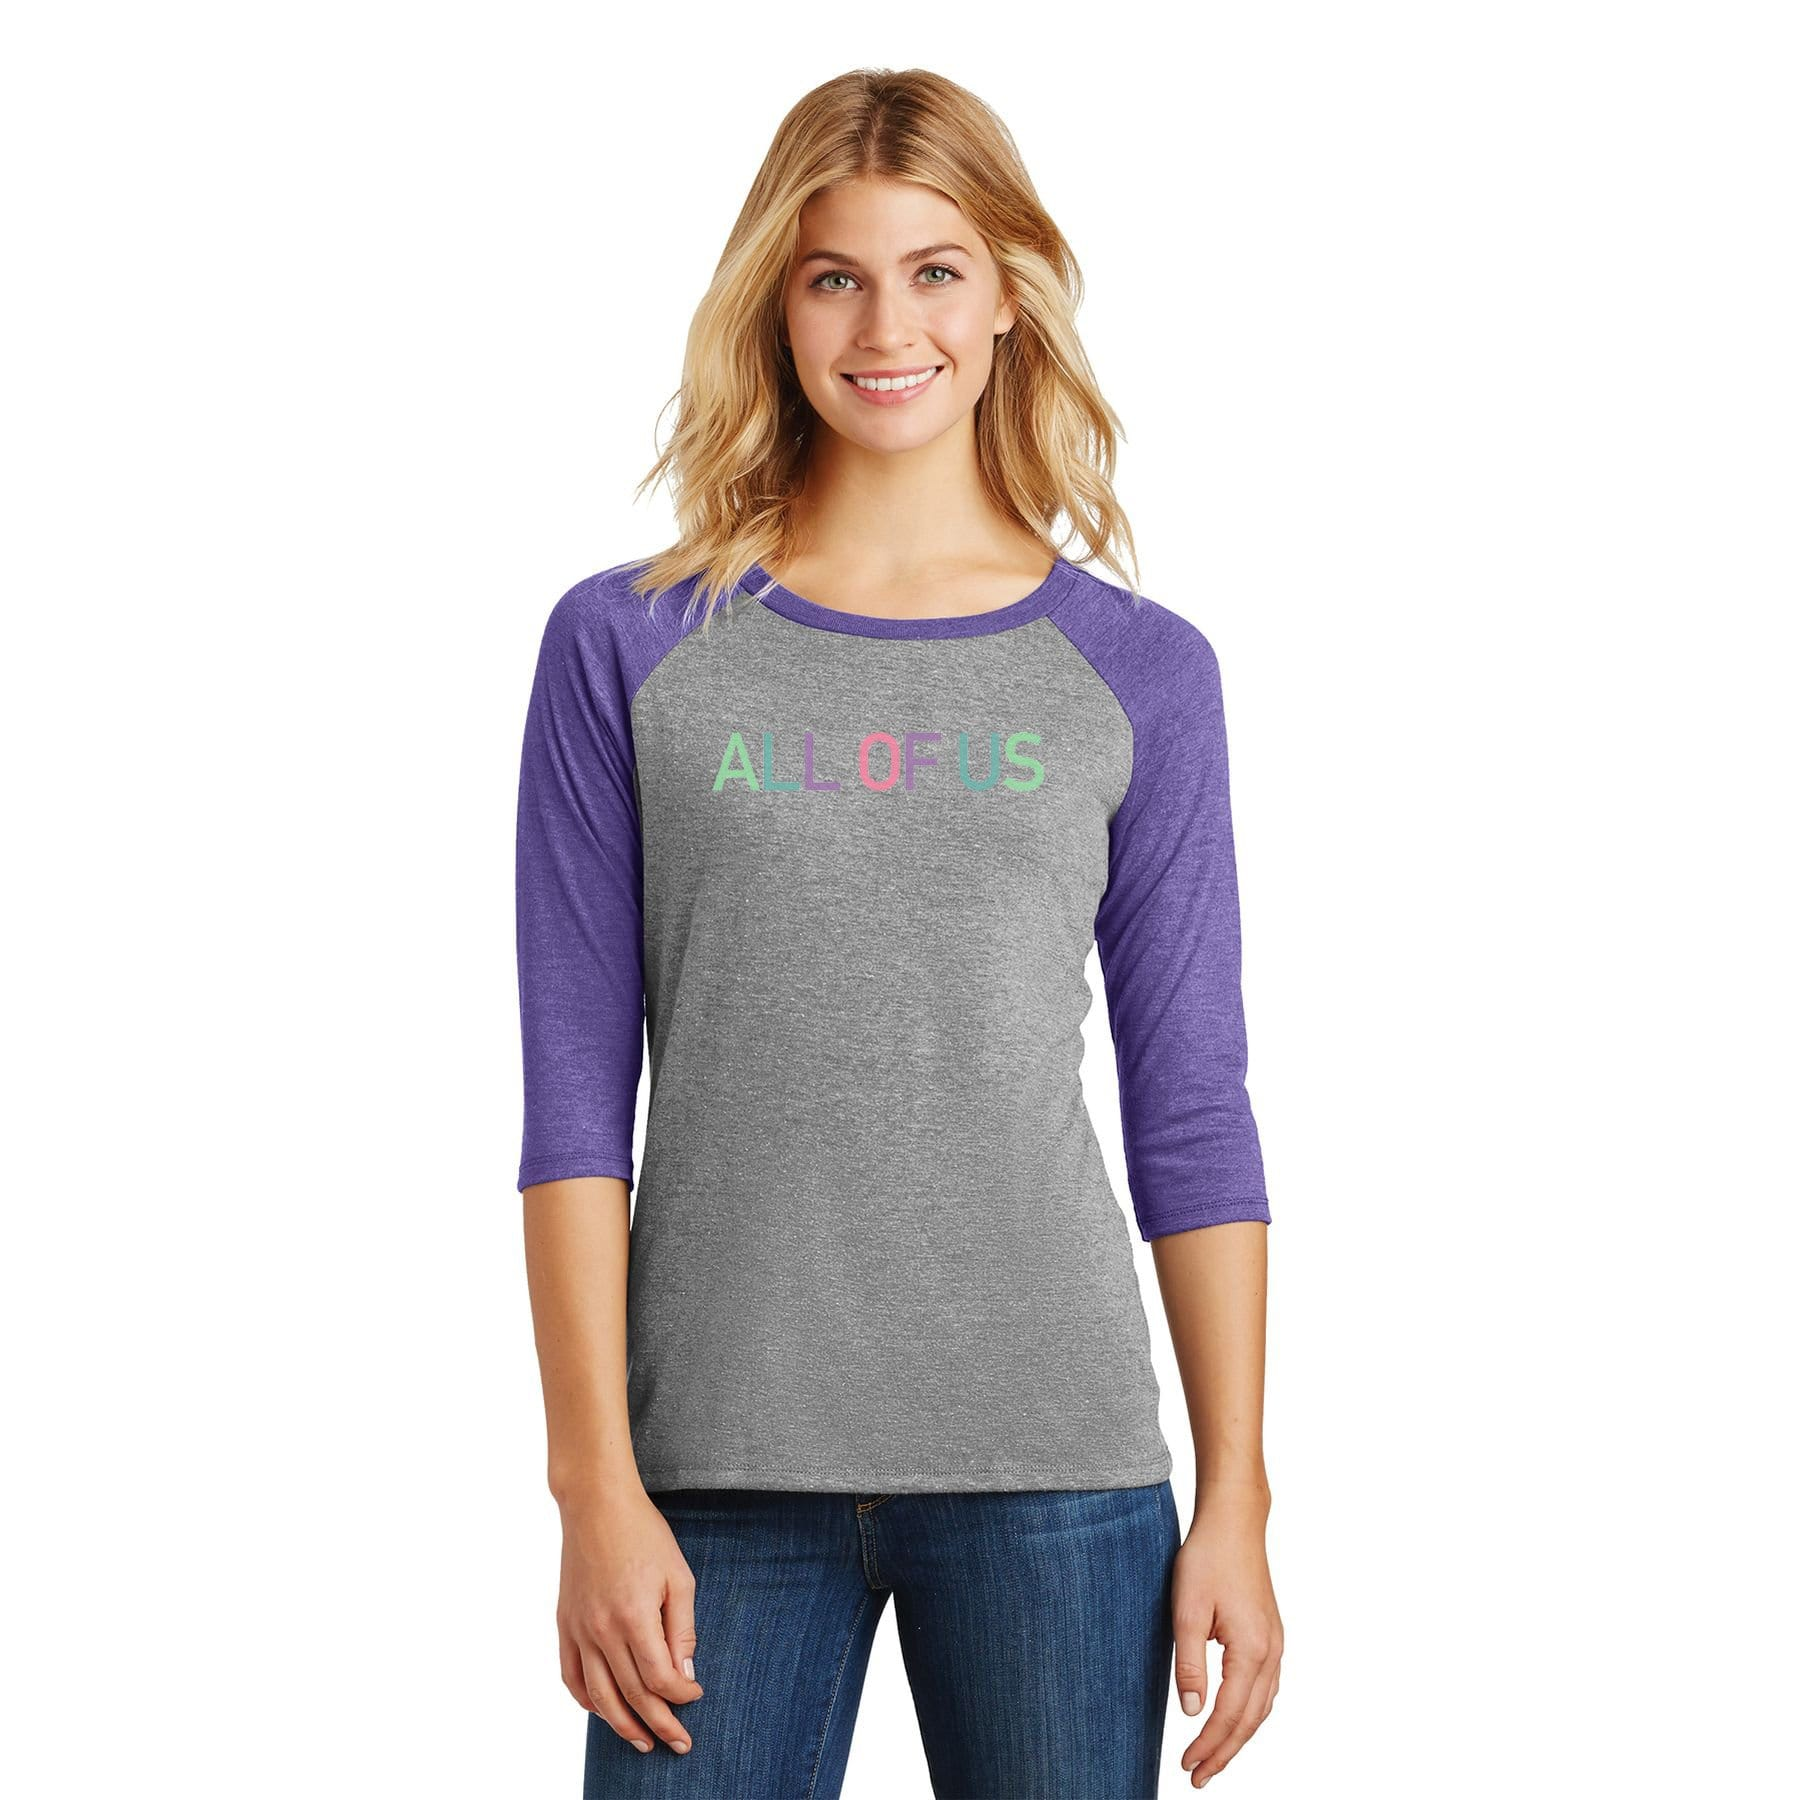 c4594dd22f7 Womens All of Us Purple Frost/Grey Frost Tri-Blend 3/4-